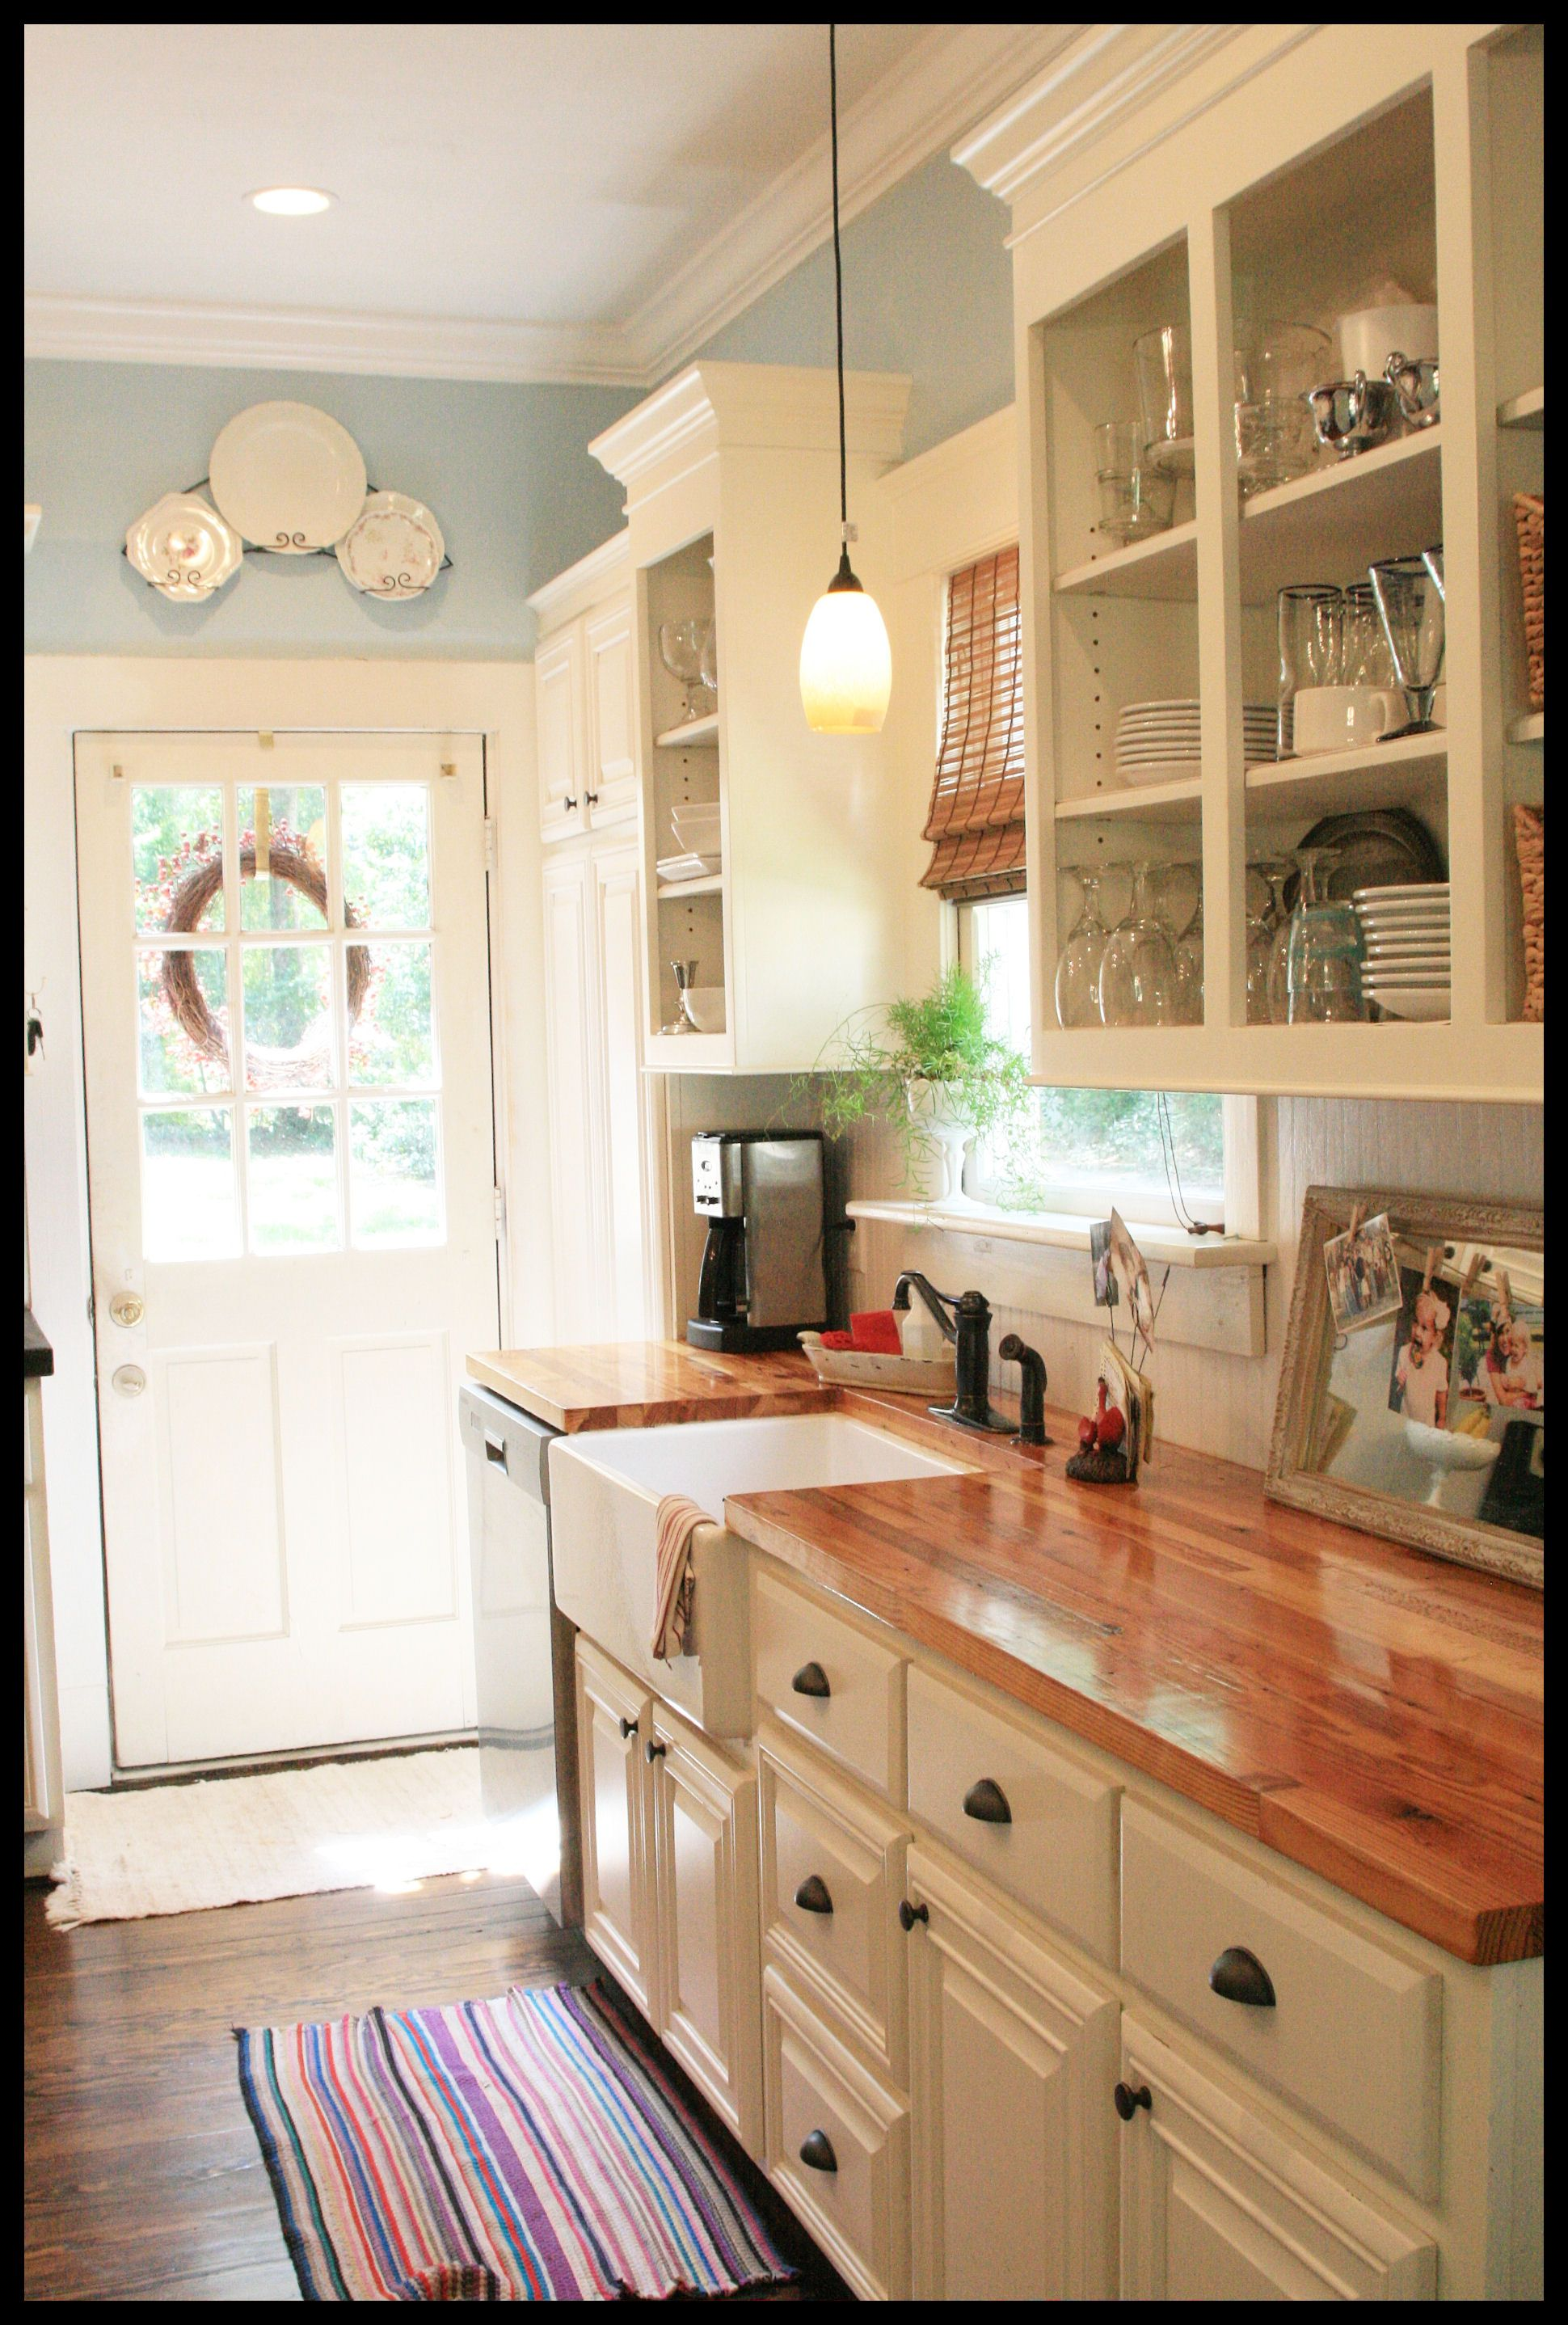 butcher block countertop, wall color, hardware and farm sink | home ...